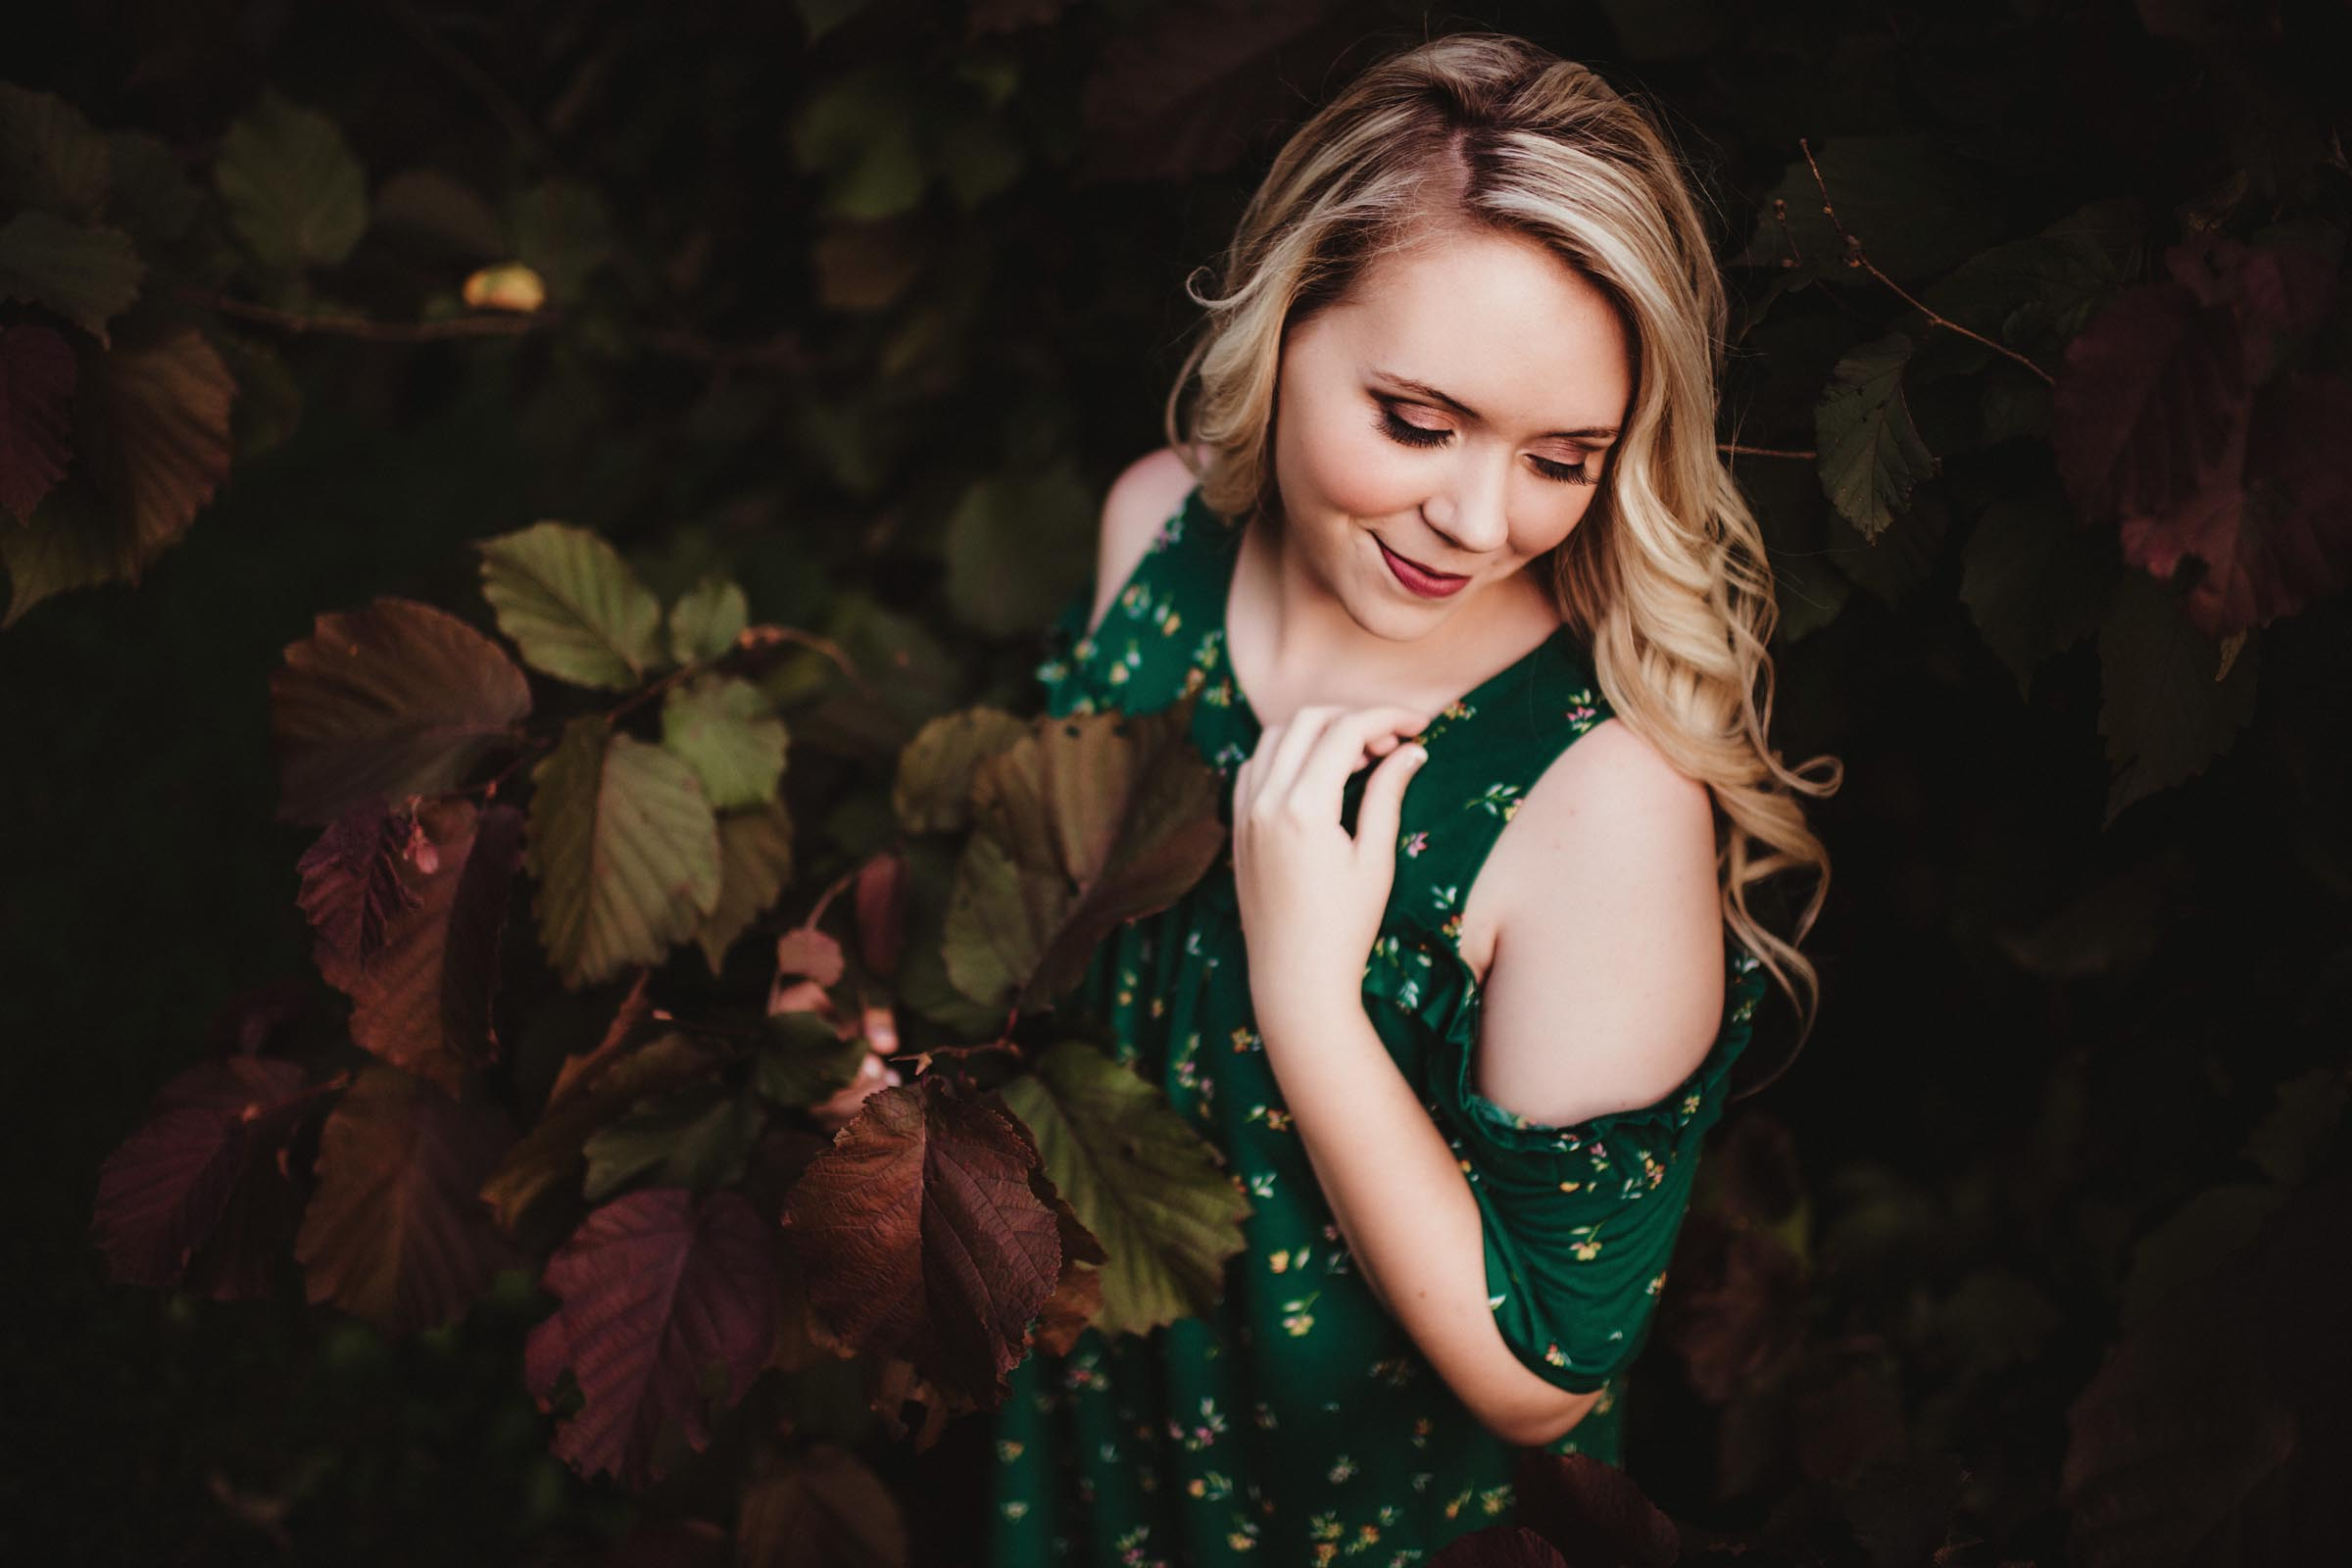 senior girl in green dress by leaves